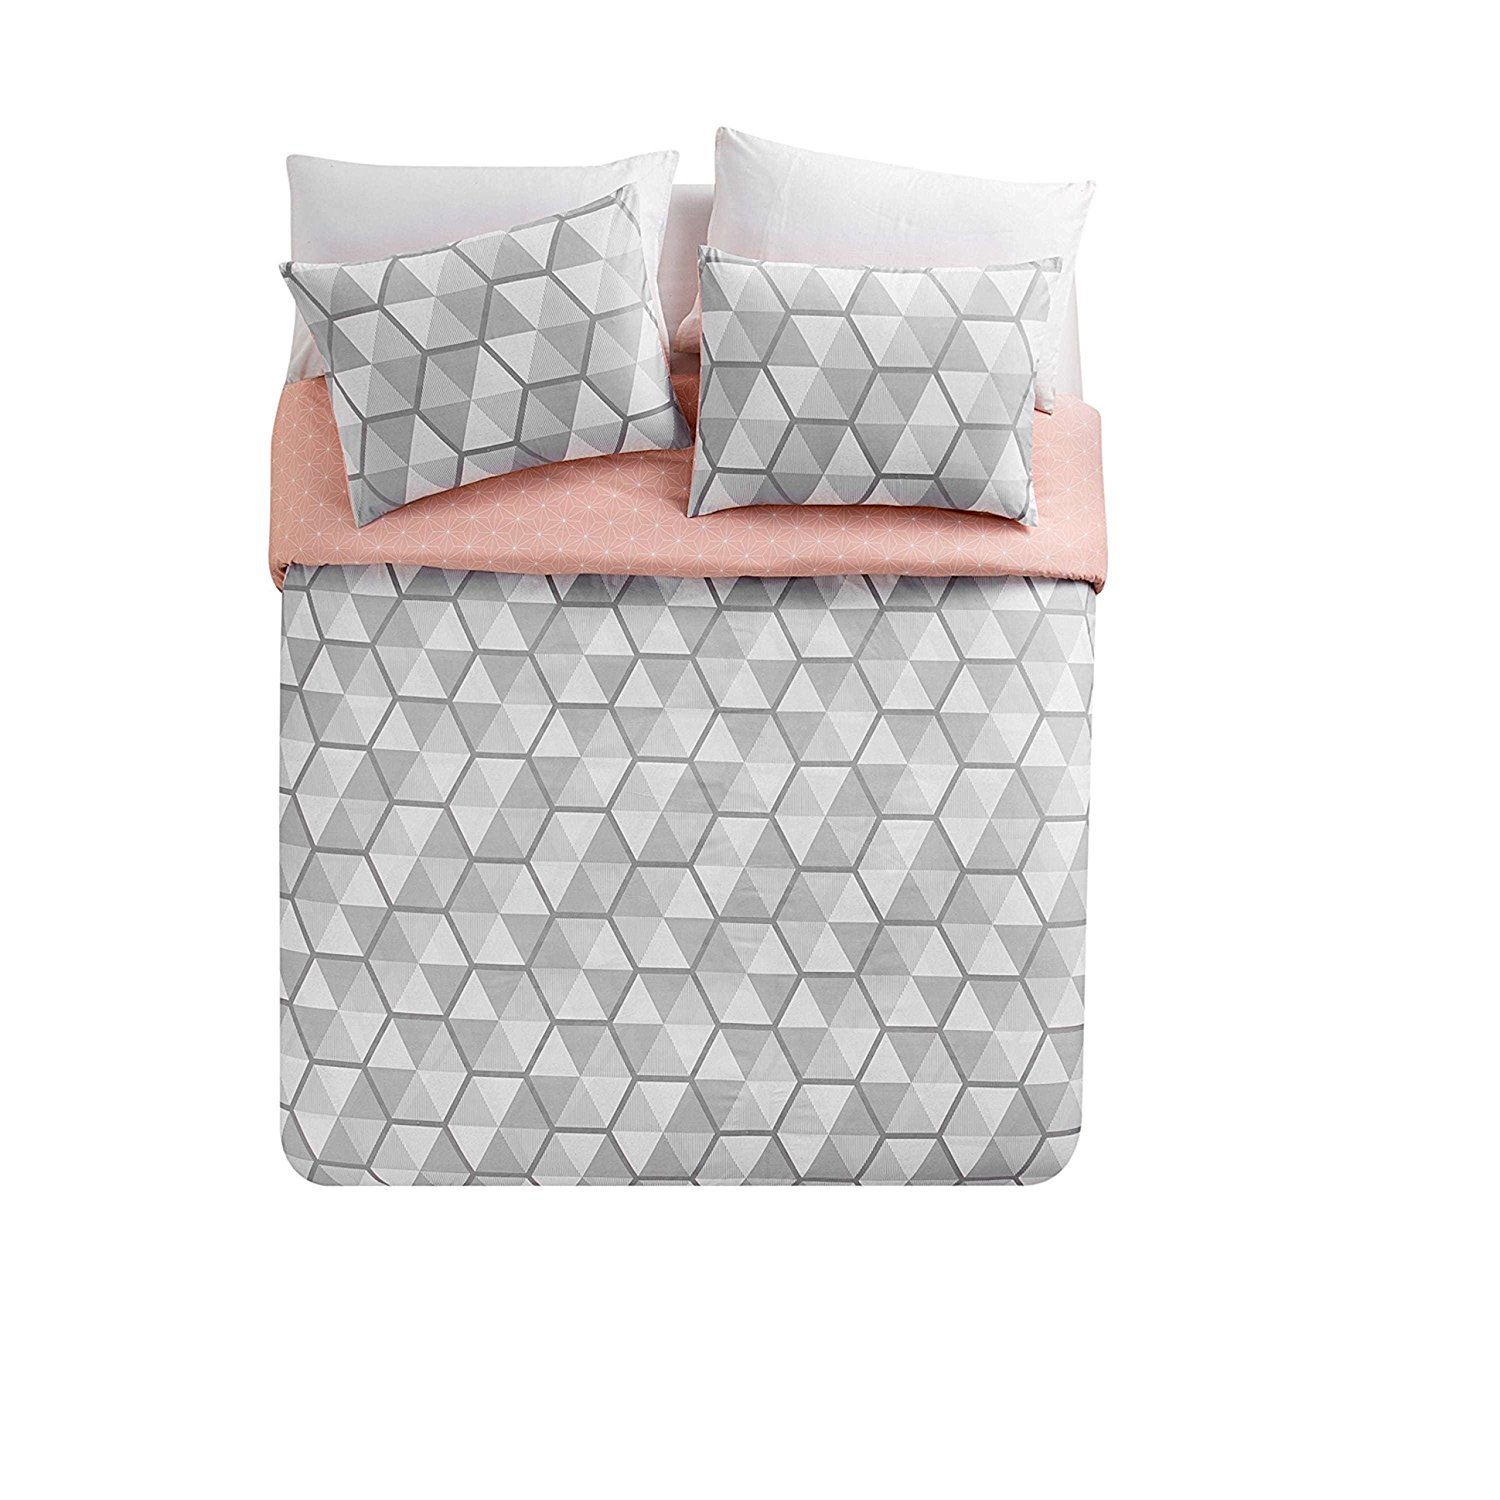 MI 3 Piece Girls Grey White Geometric Illusion Duvet Cover King Set, Bold 3D Abstract Triangle Illusions Themed Bedding, Chic Light Pink Polka Dot Reversible Pattern, Polyester